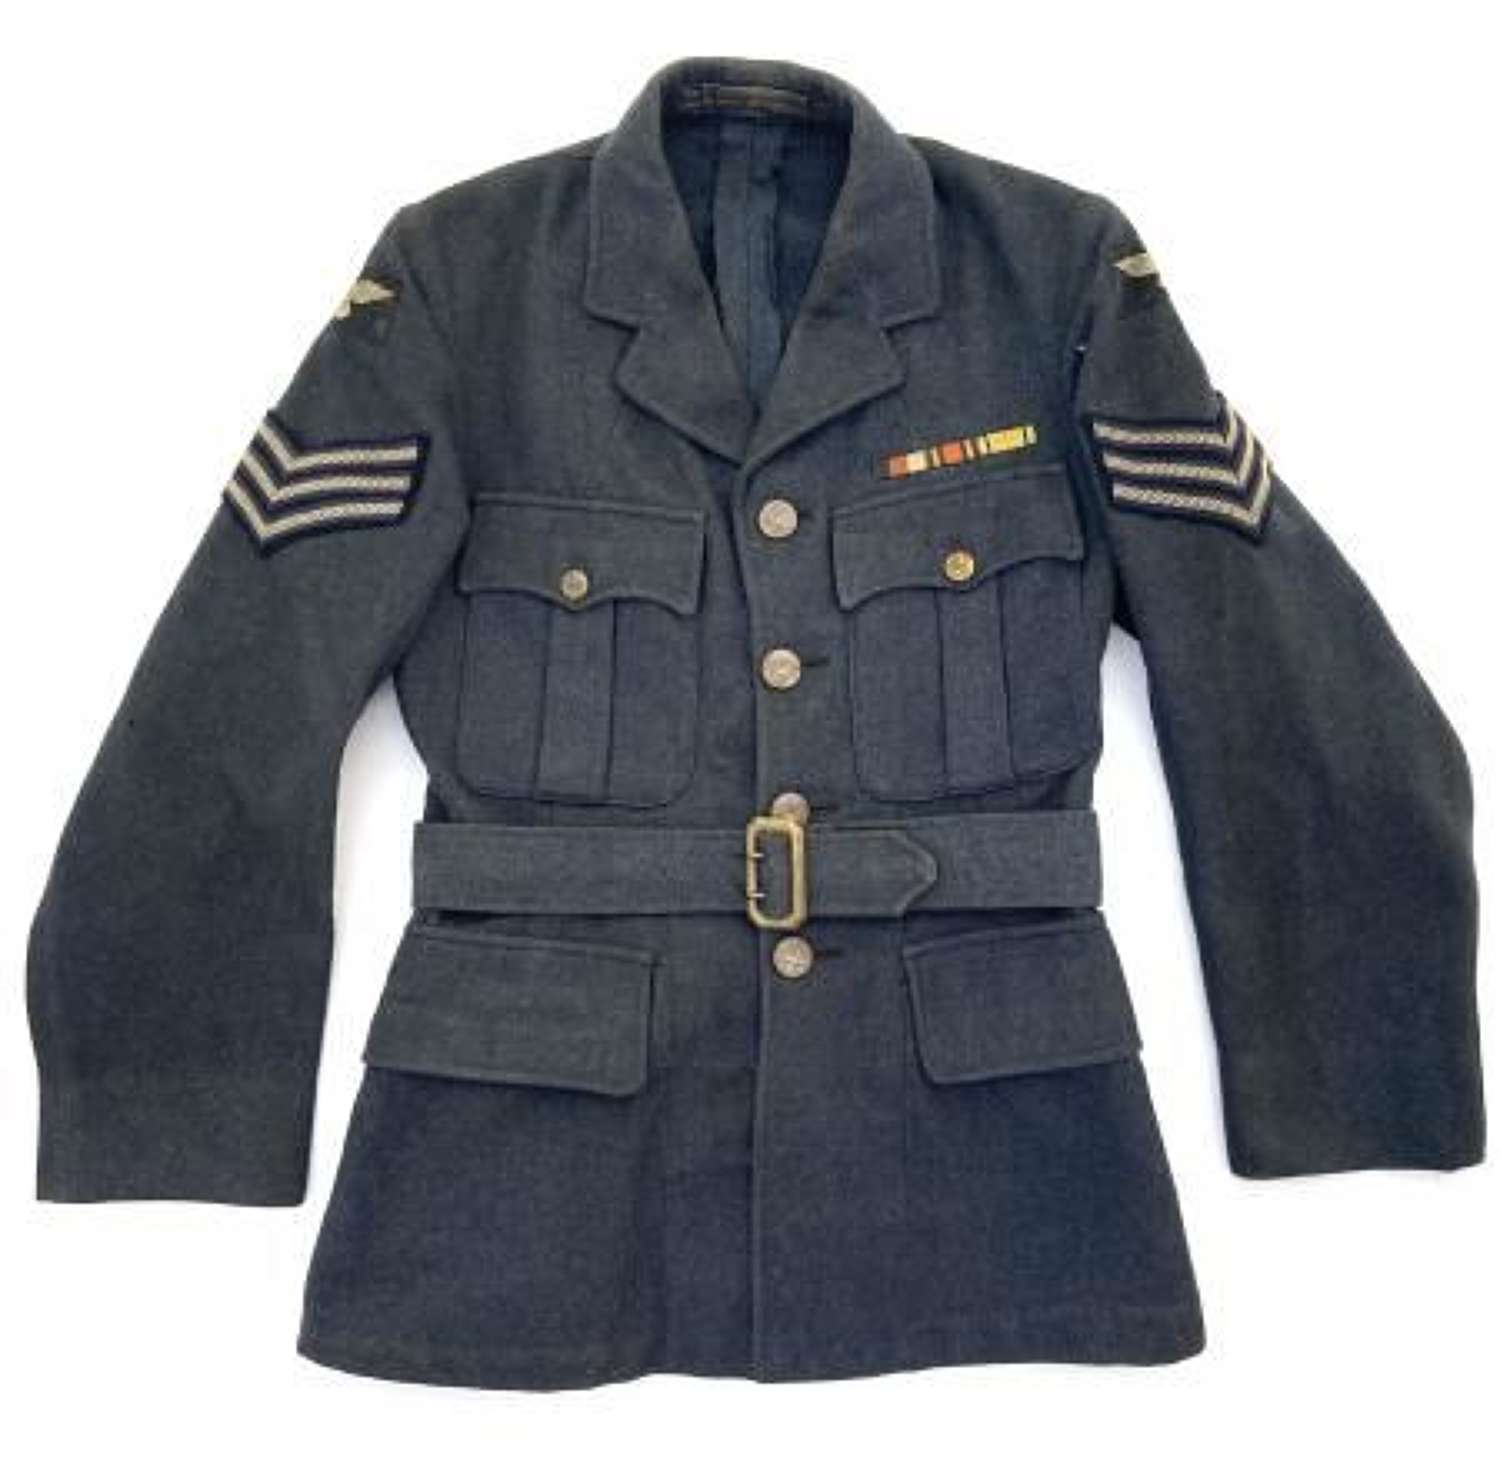 Original 1941 Dated RAF Ordinary Airman's Tunic with Sergeants Insignia.